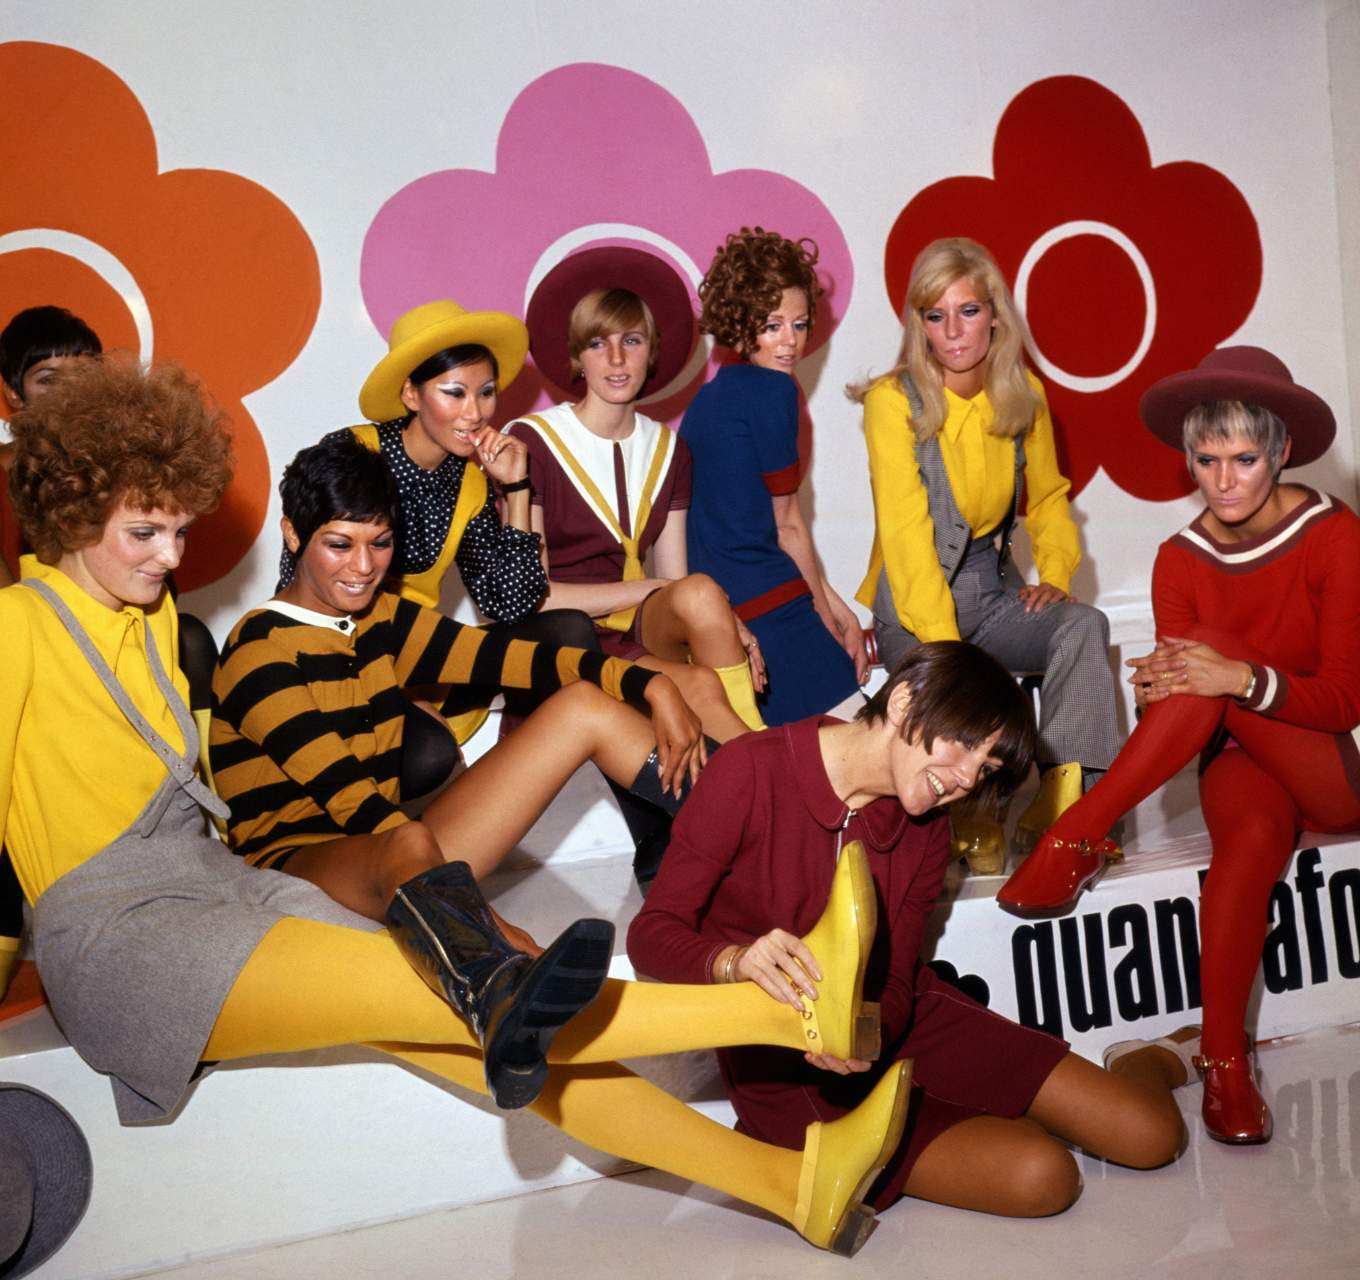 Mary Quant Exhibition © PA Images